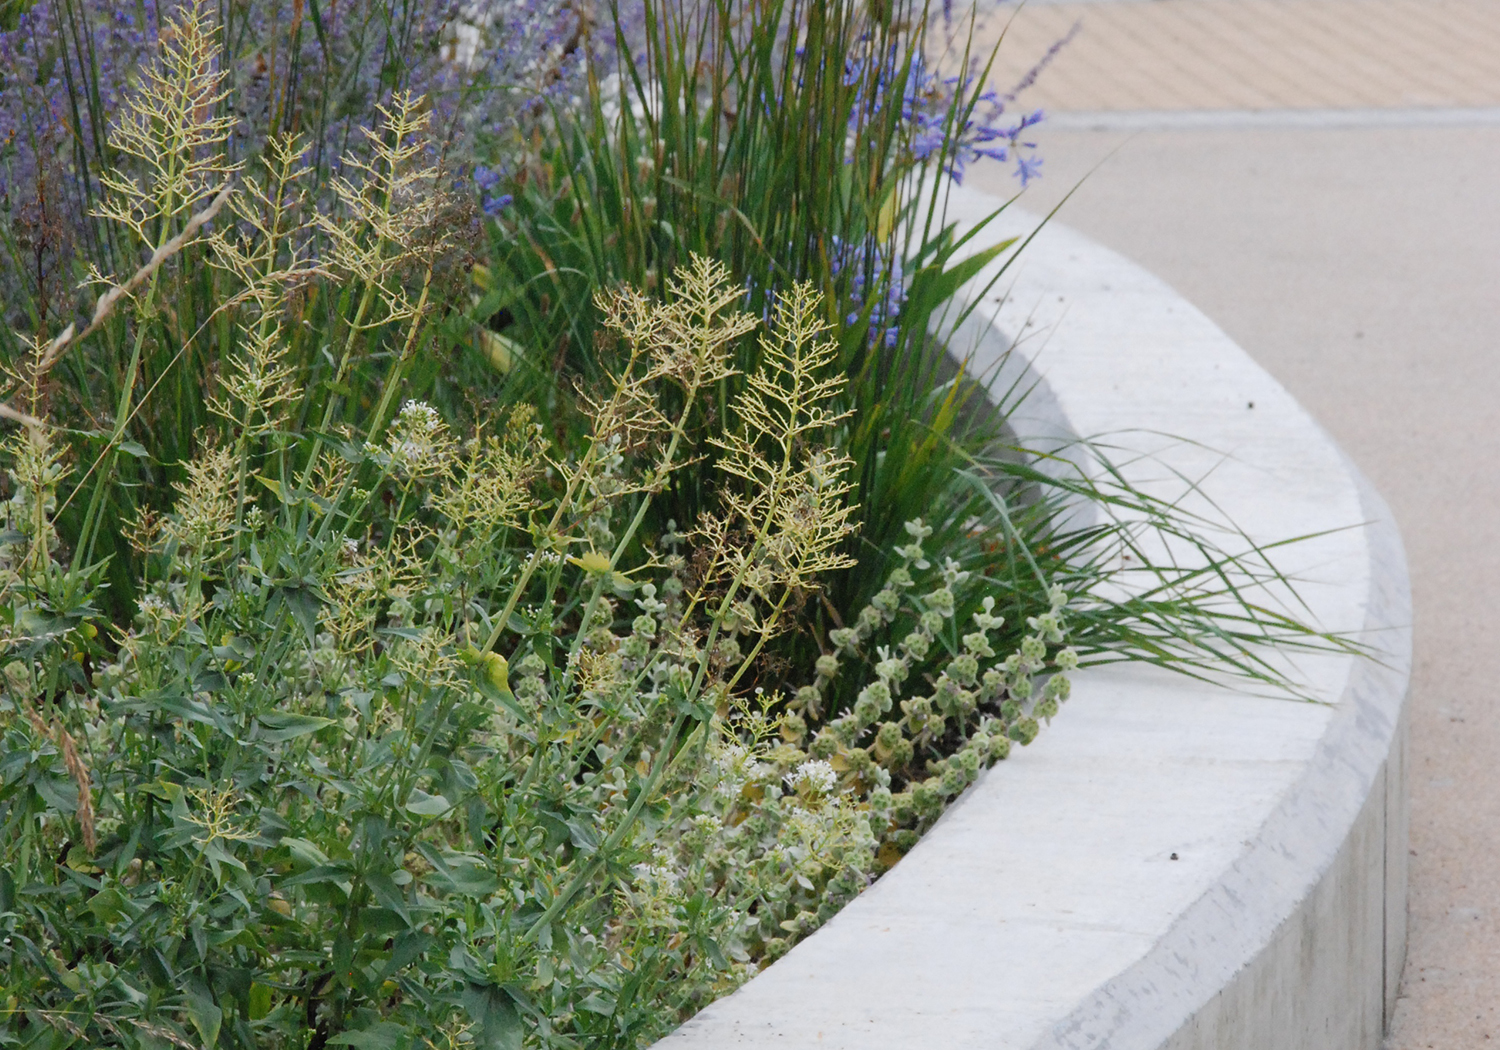 Projects-Education-Strood-ContainerPlanting-1500x1050